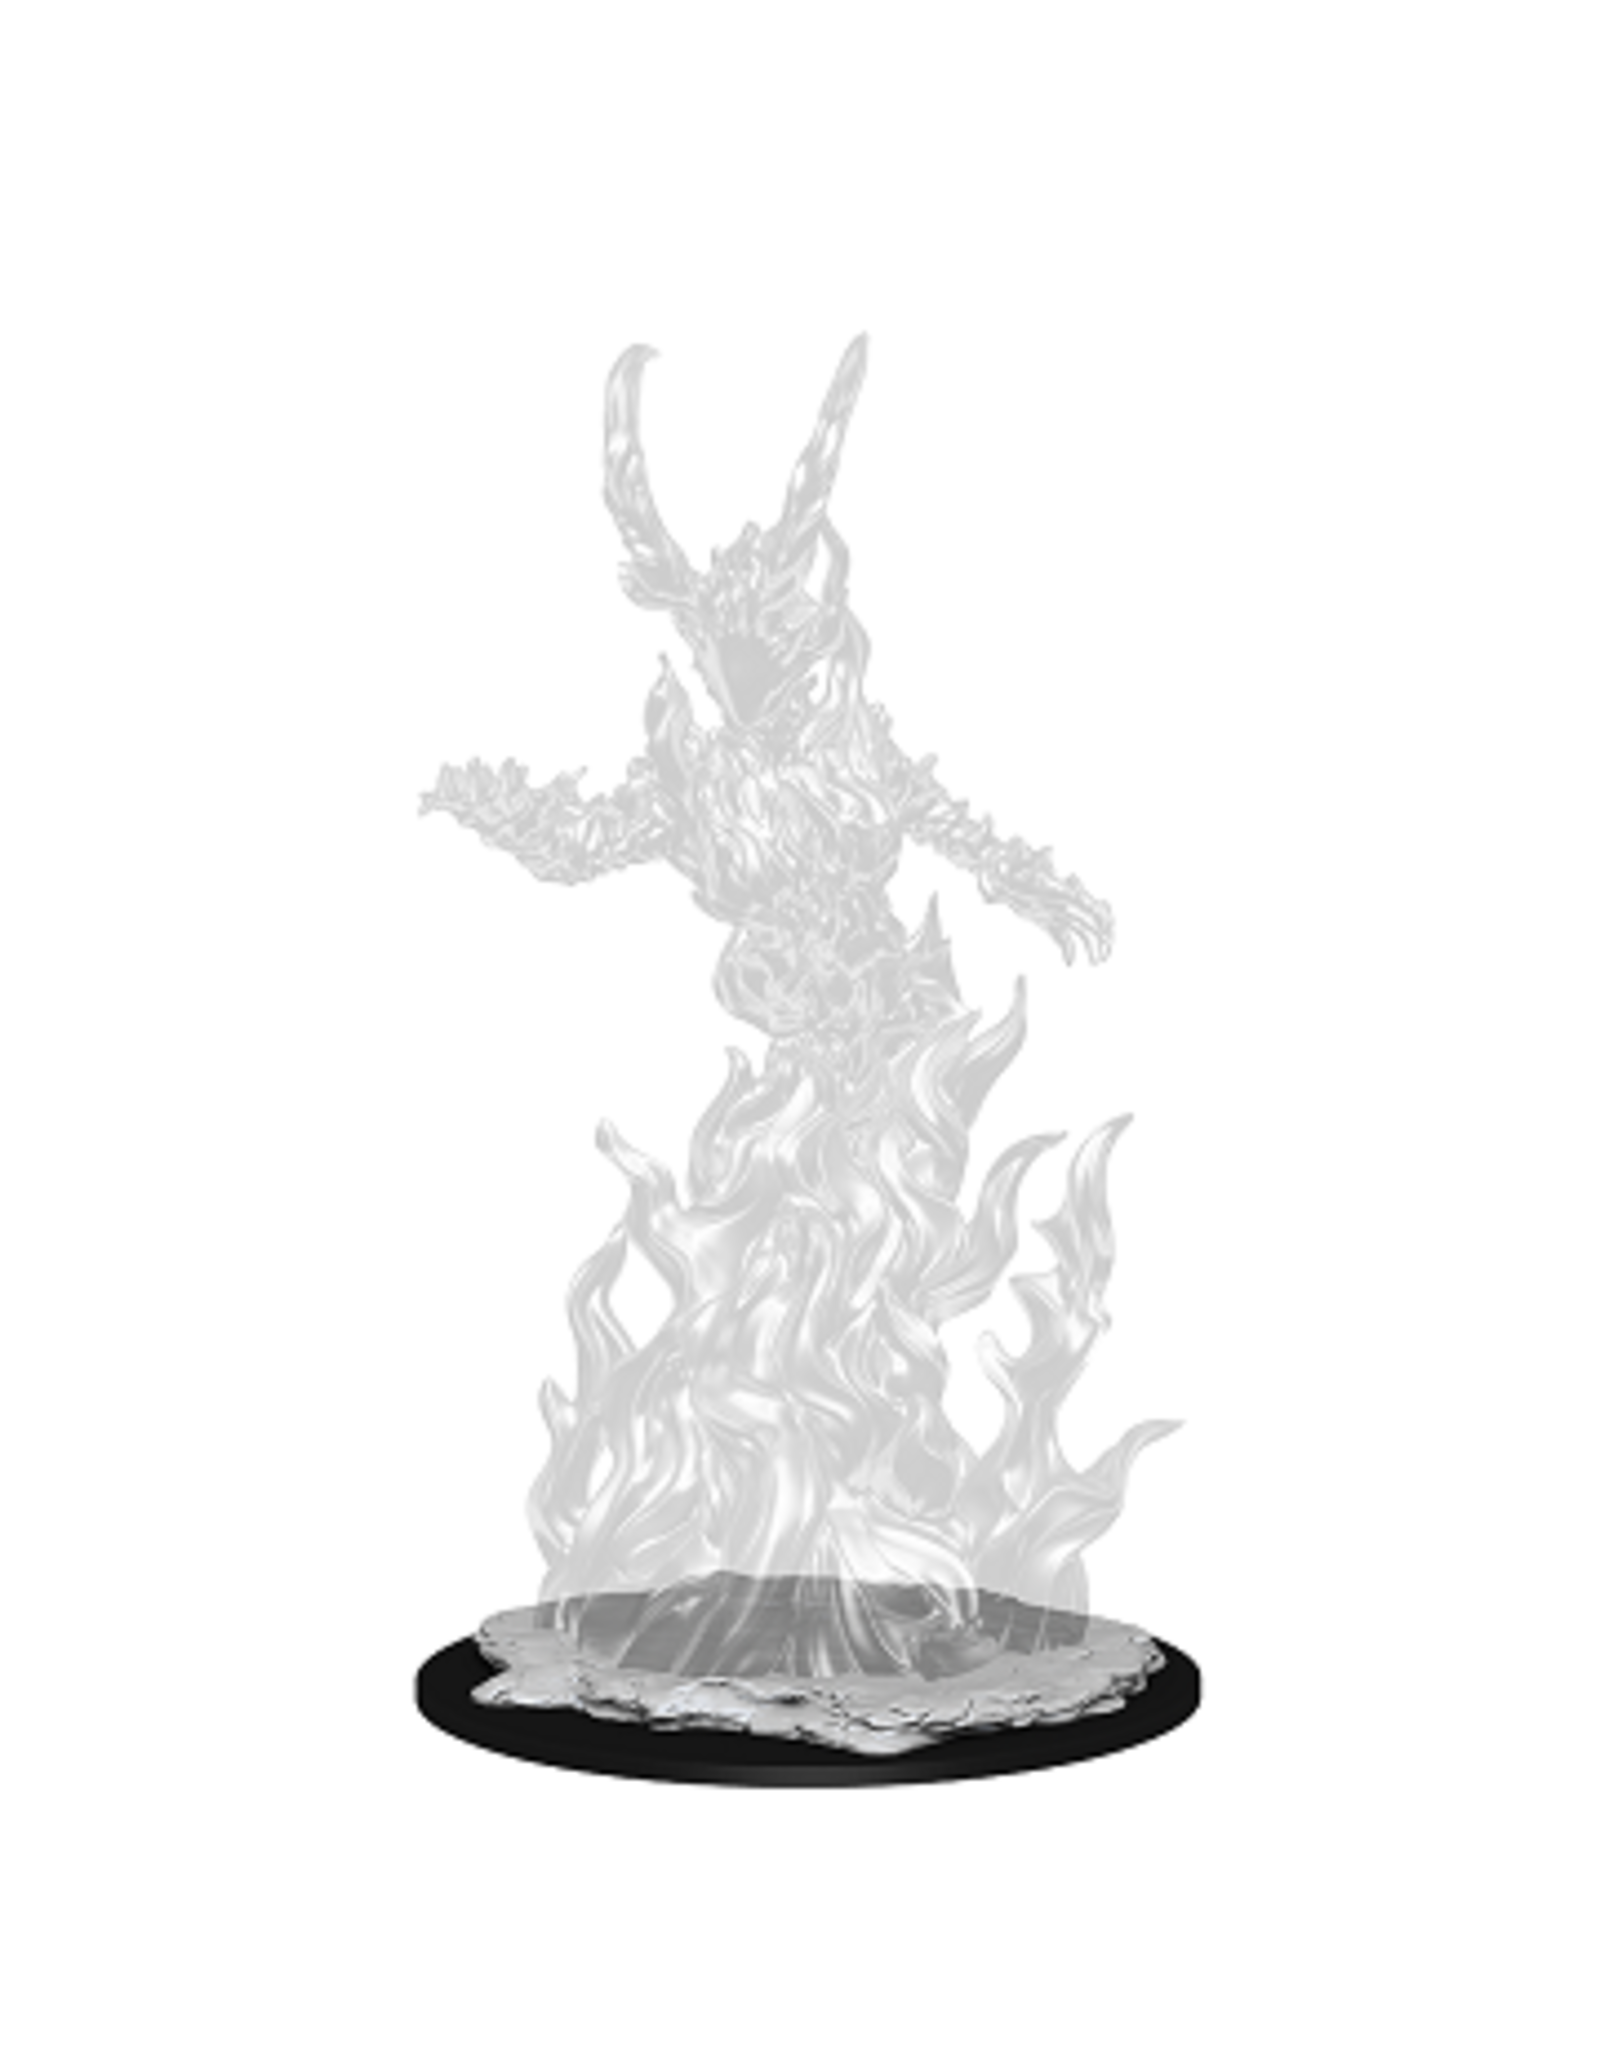 WizKids Dungeons and Dragons Unpainted Minis Wave 13 - Huge Fire Elemental Lord